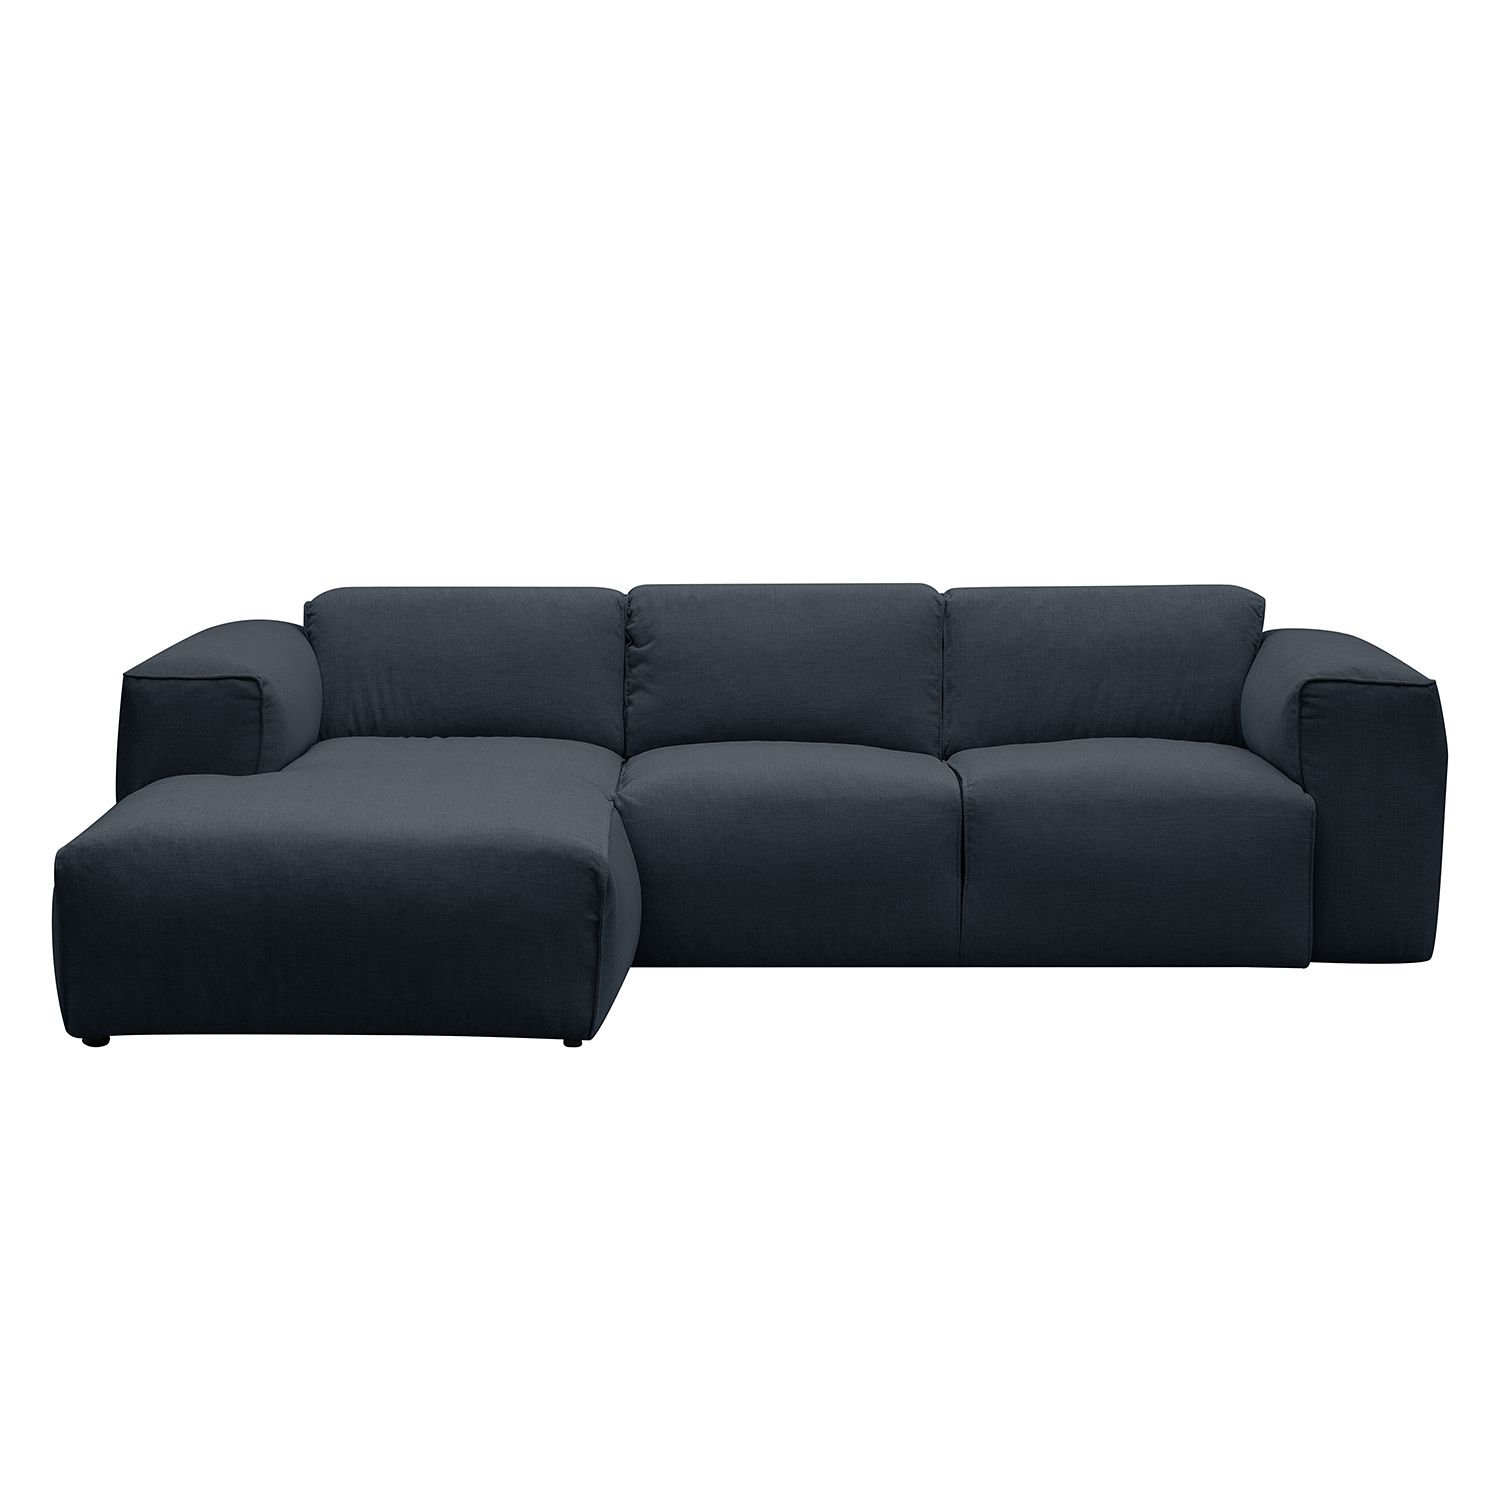 Ecksofa grau  Sofa Hudson II (3-Sitzer) Echtleder - Fashion For Home